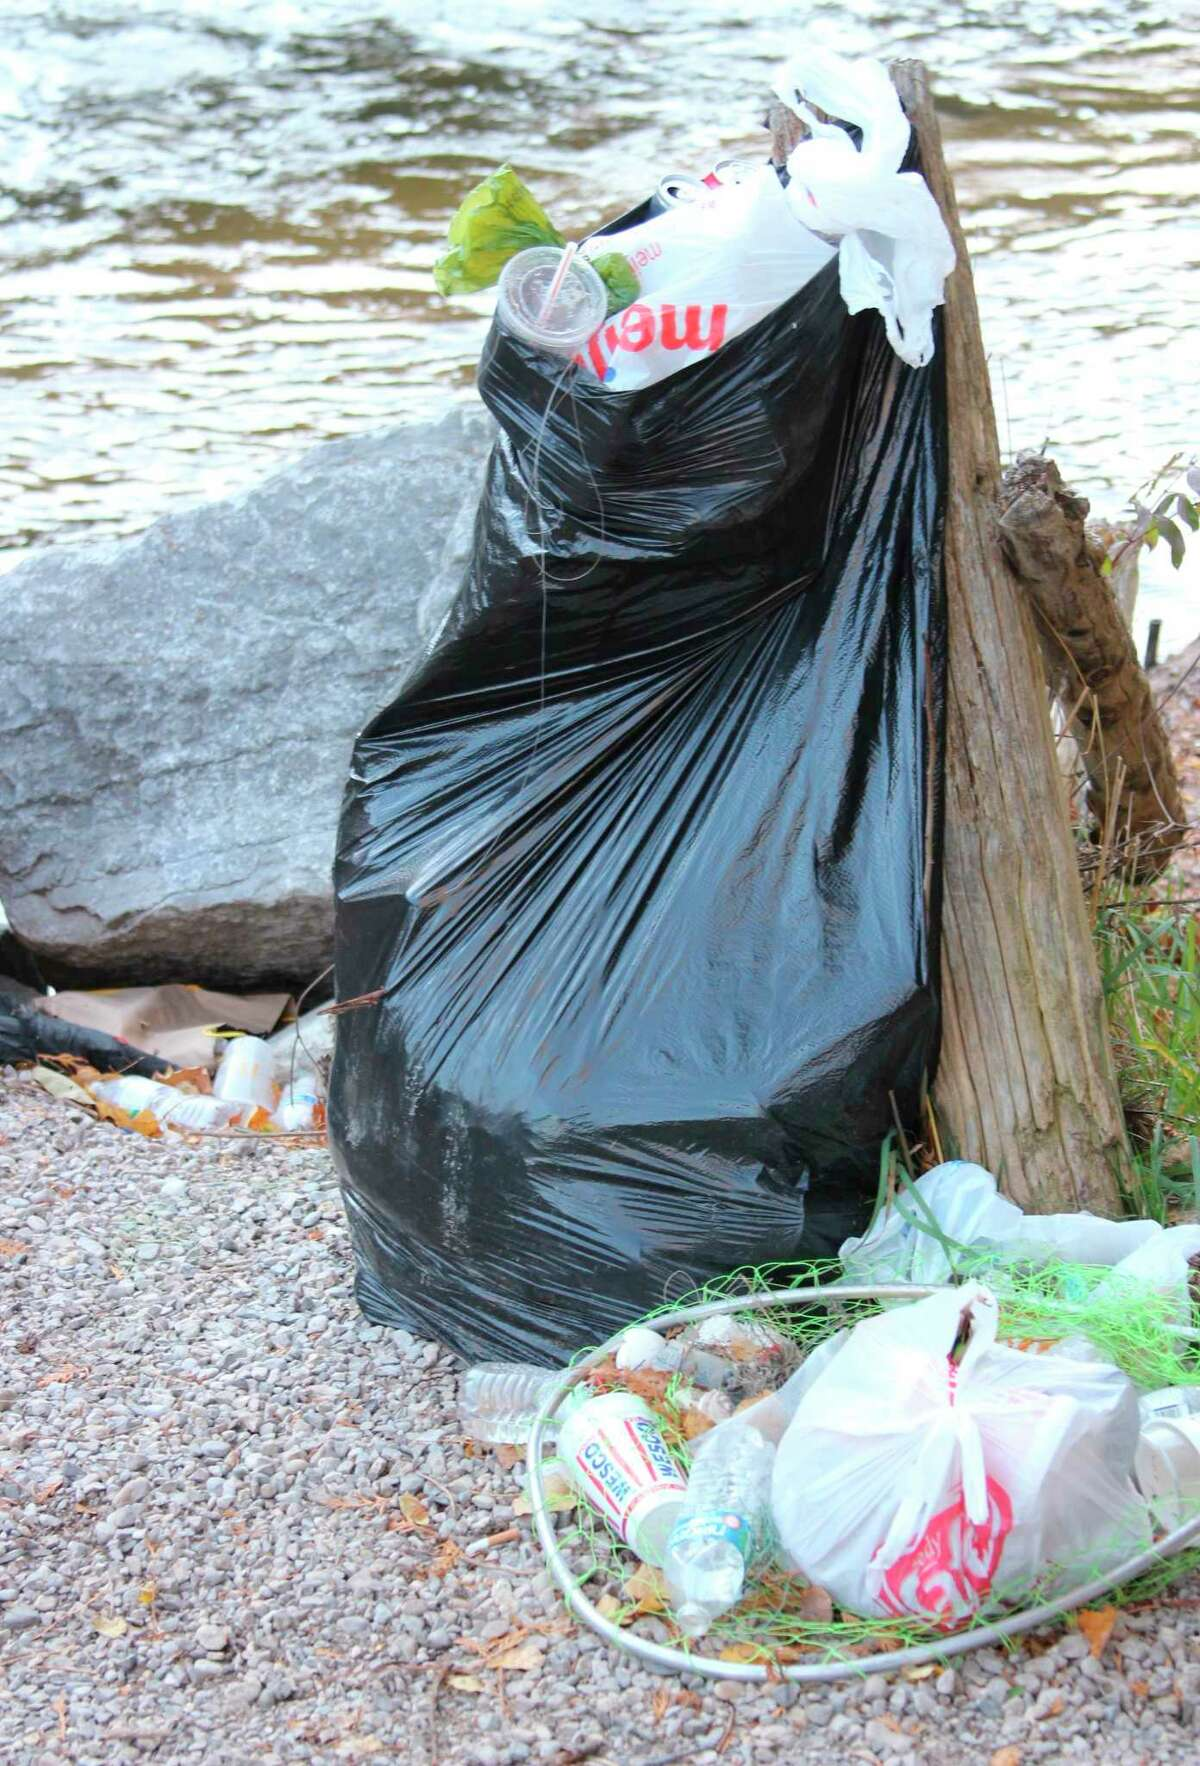 Garbage left at the Homestead Dam after the 2020 salmon run was a common sight as the river there is popular with anglers. The DNR is reminding anglers to clean up after themselves. (File Photo)